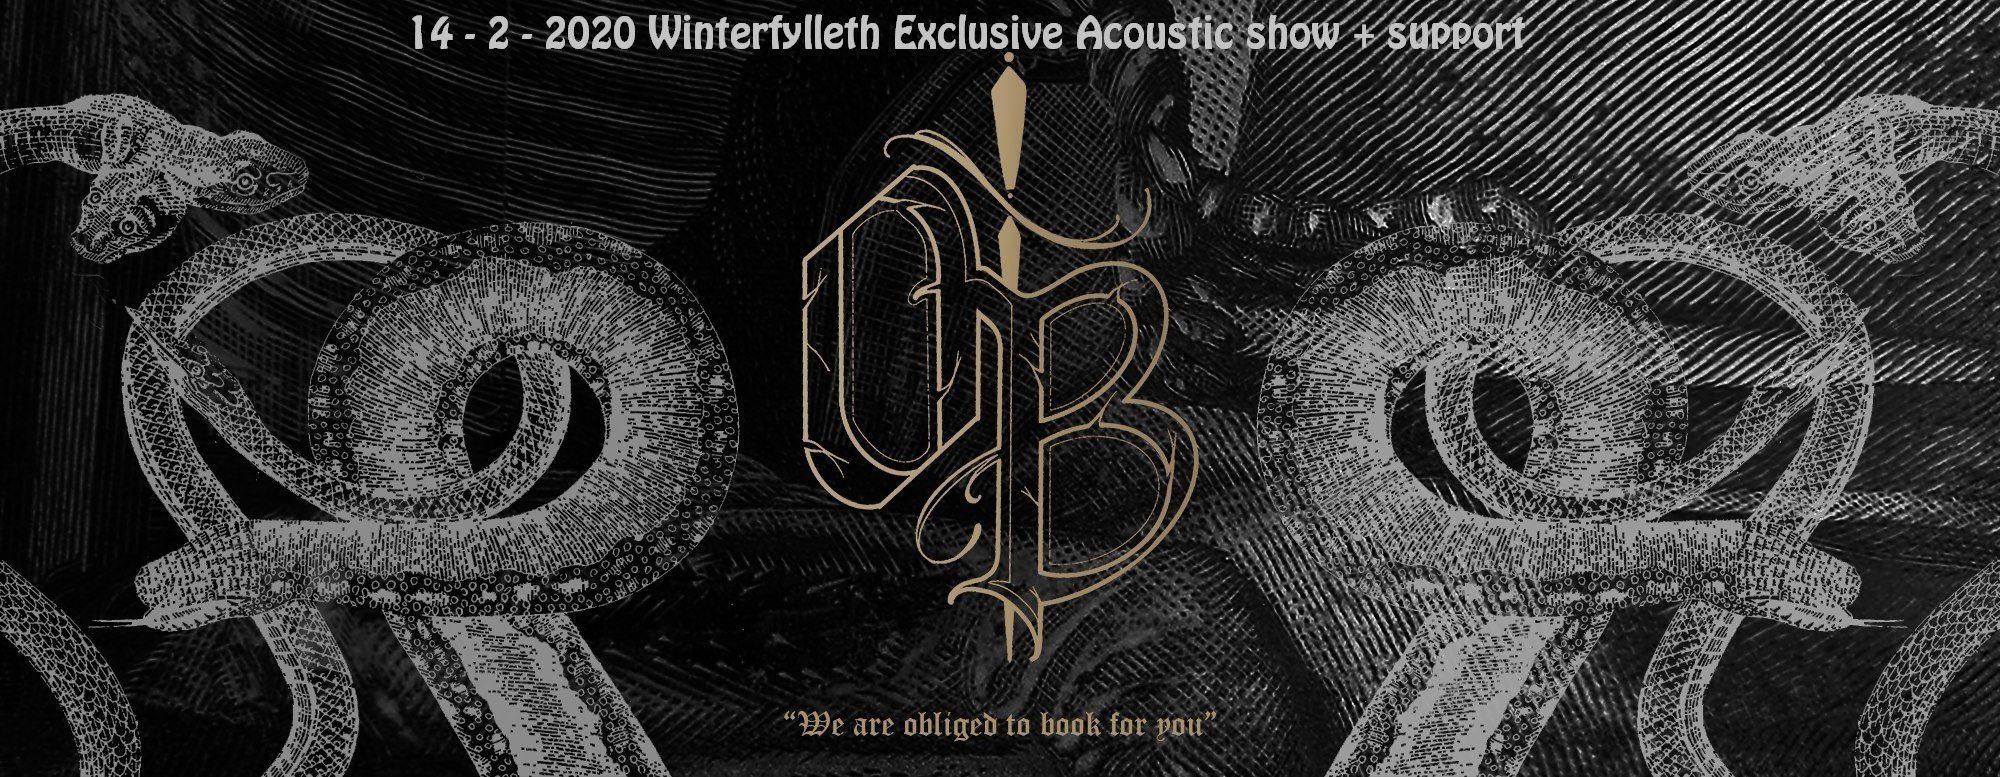 Winterfylleth Exclusive Acoustic show + support of ARD